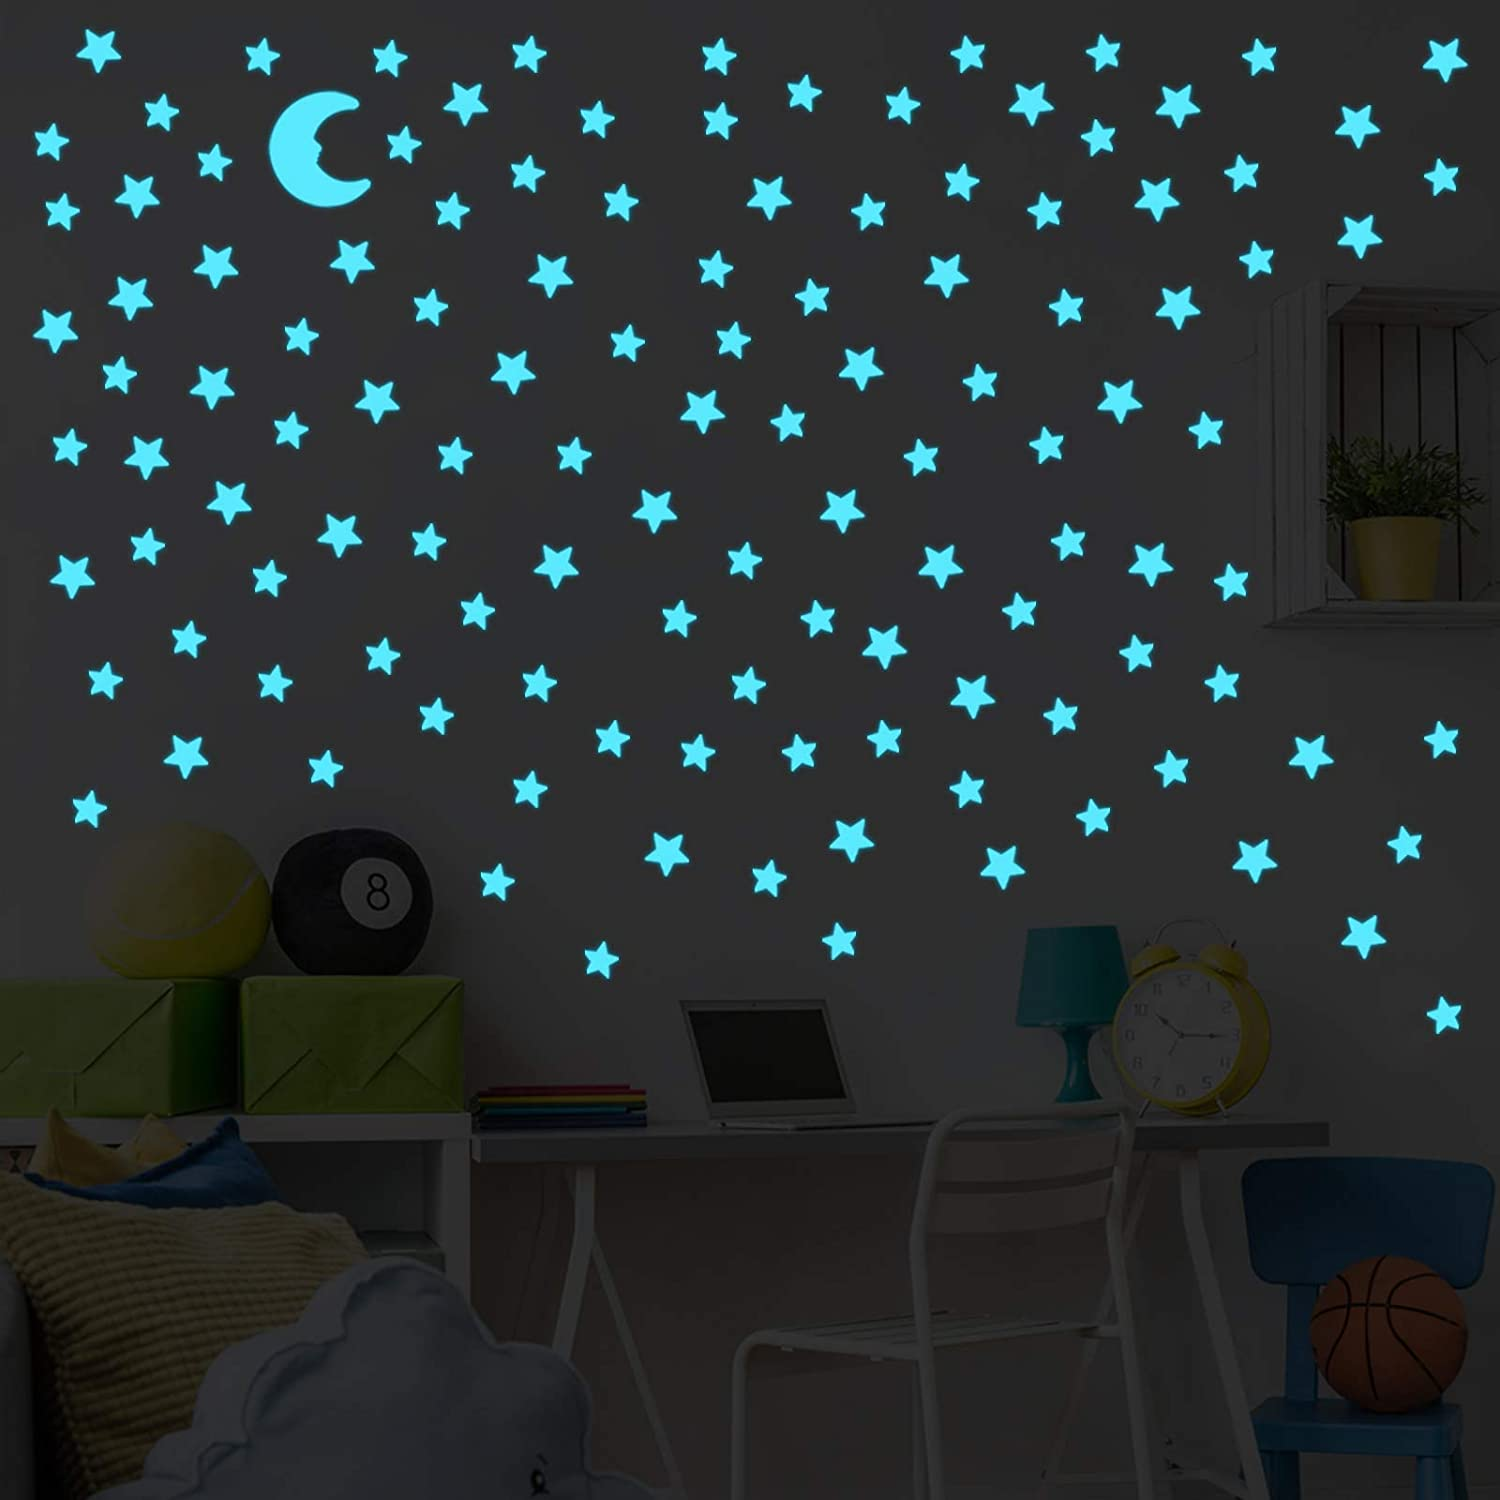 Glow in The Dark Stars for Celling Glowing Stars Wall Decals Removable Murals Decals for Kids Girls Bedding Room Decorations 150pcs Blue Plastic Stars Wall Sticker and A Moon Decor